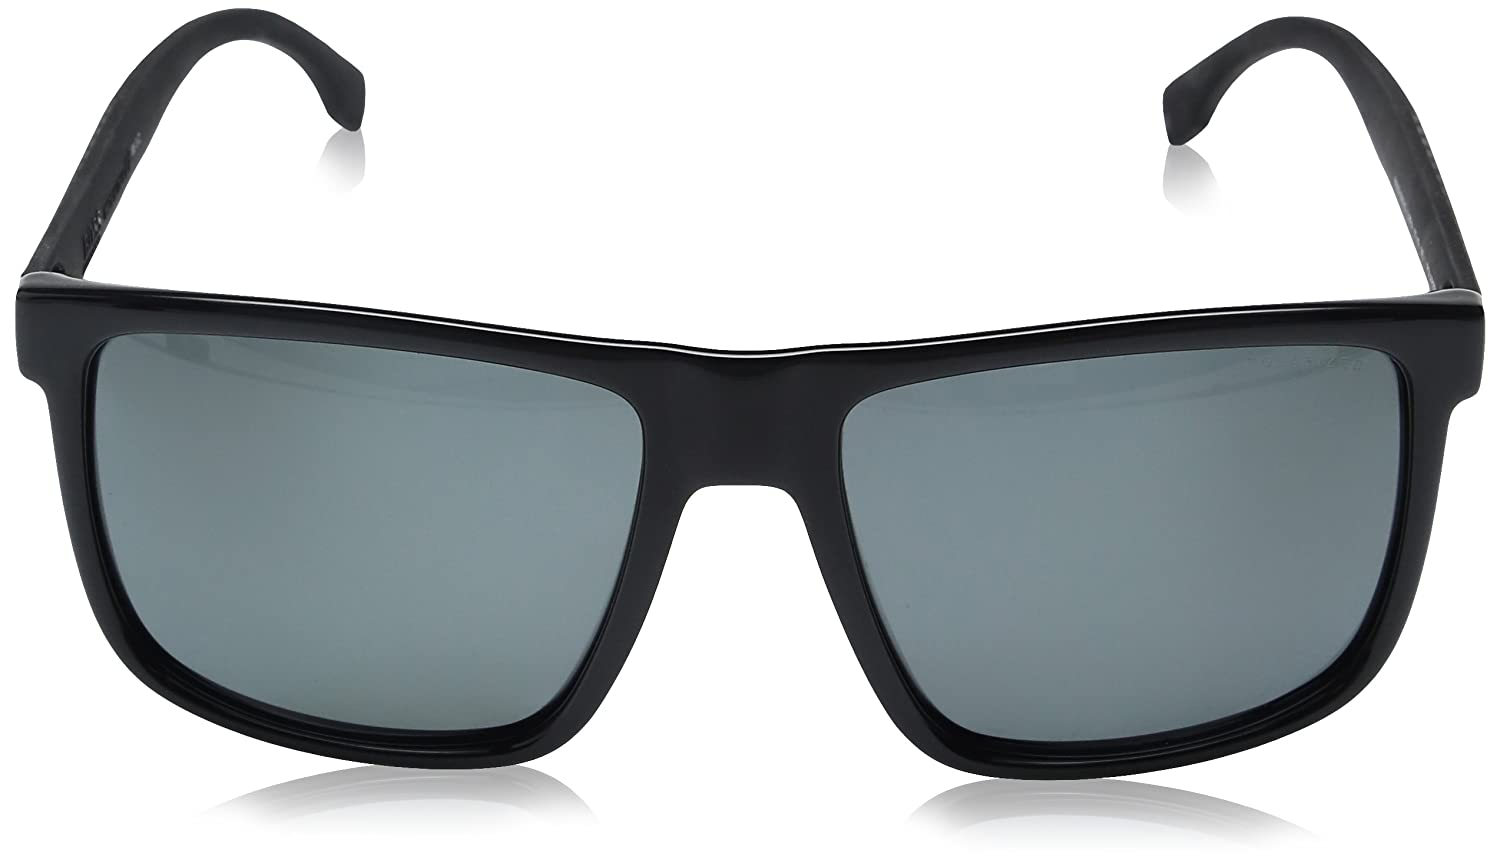 BOSS by Hugo Boss Mens B0879s Rectangular Sunglasses, Shiny Black/Gray Polarized, 57 mm